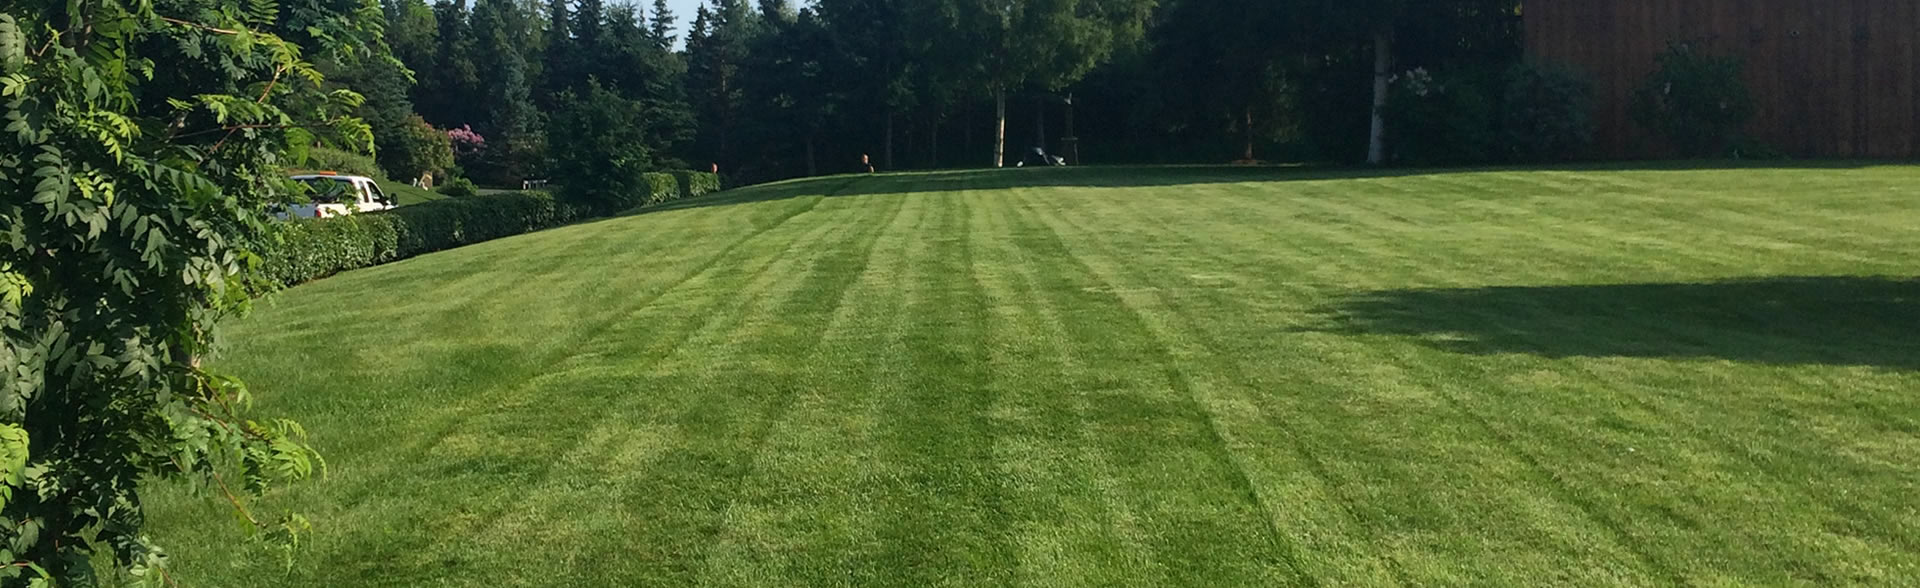 anchorage-lawn-mowing